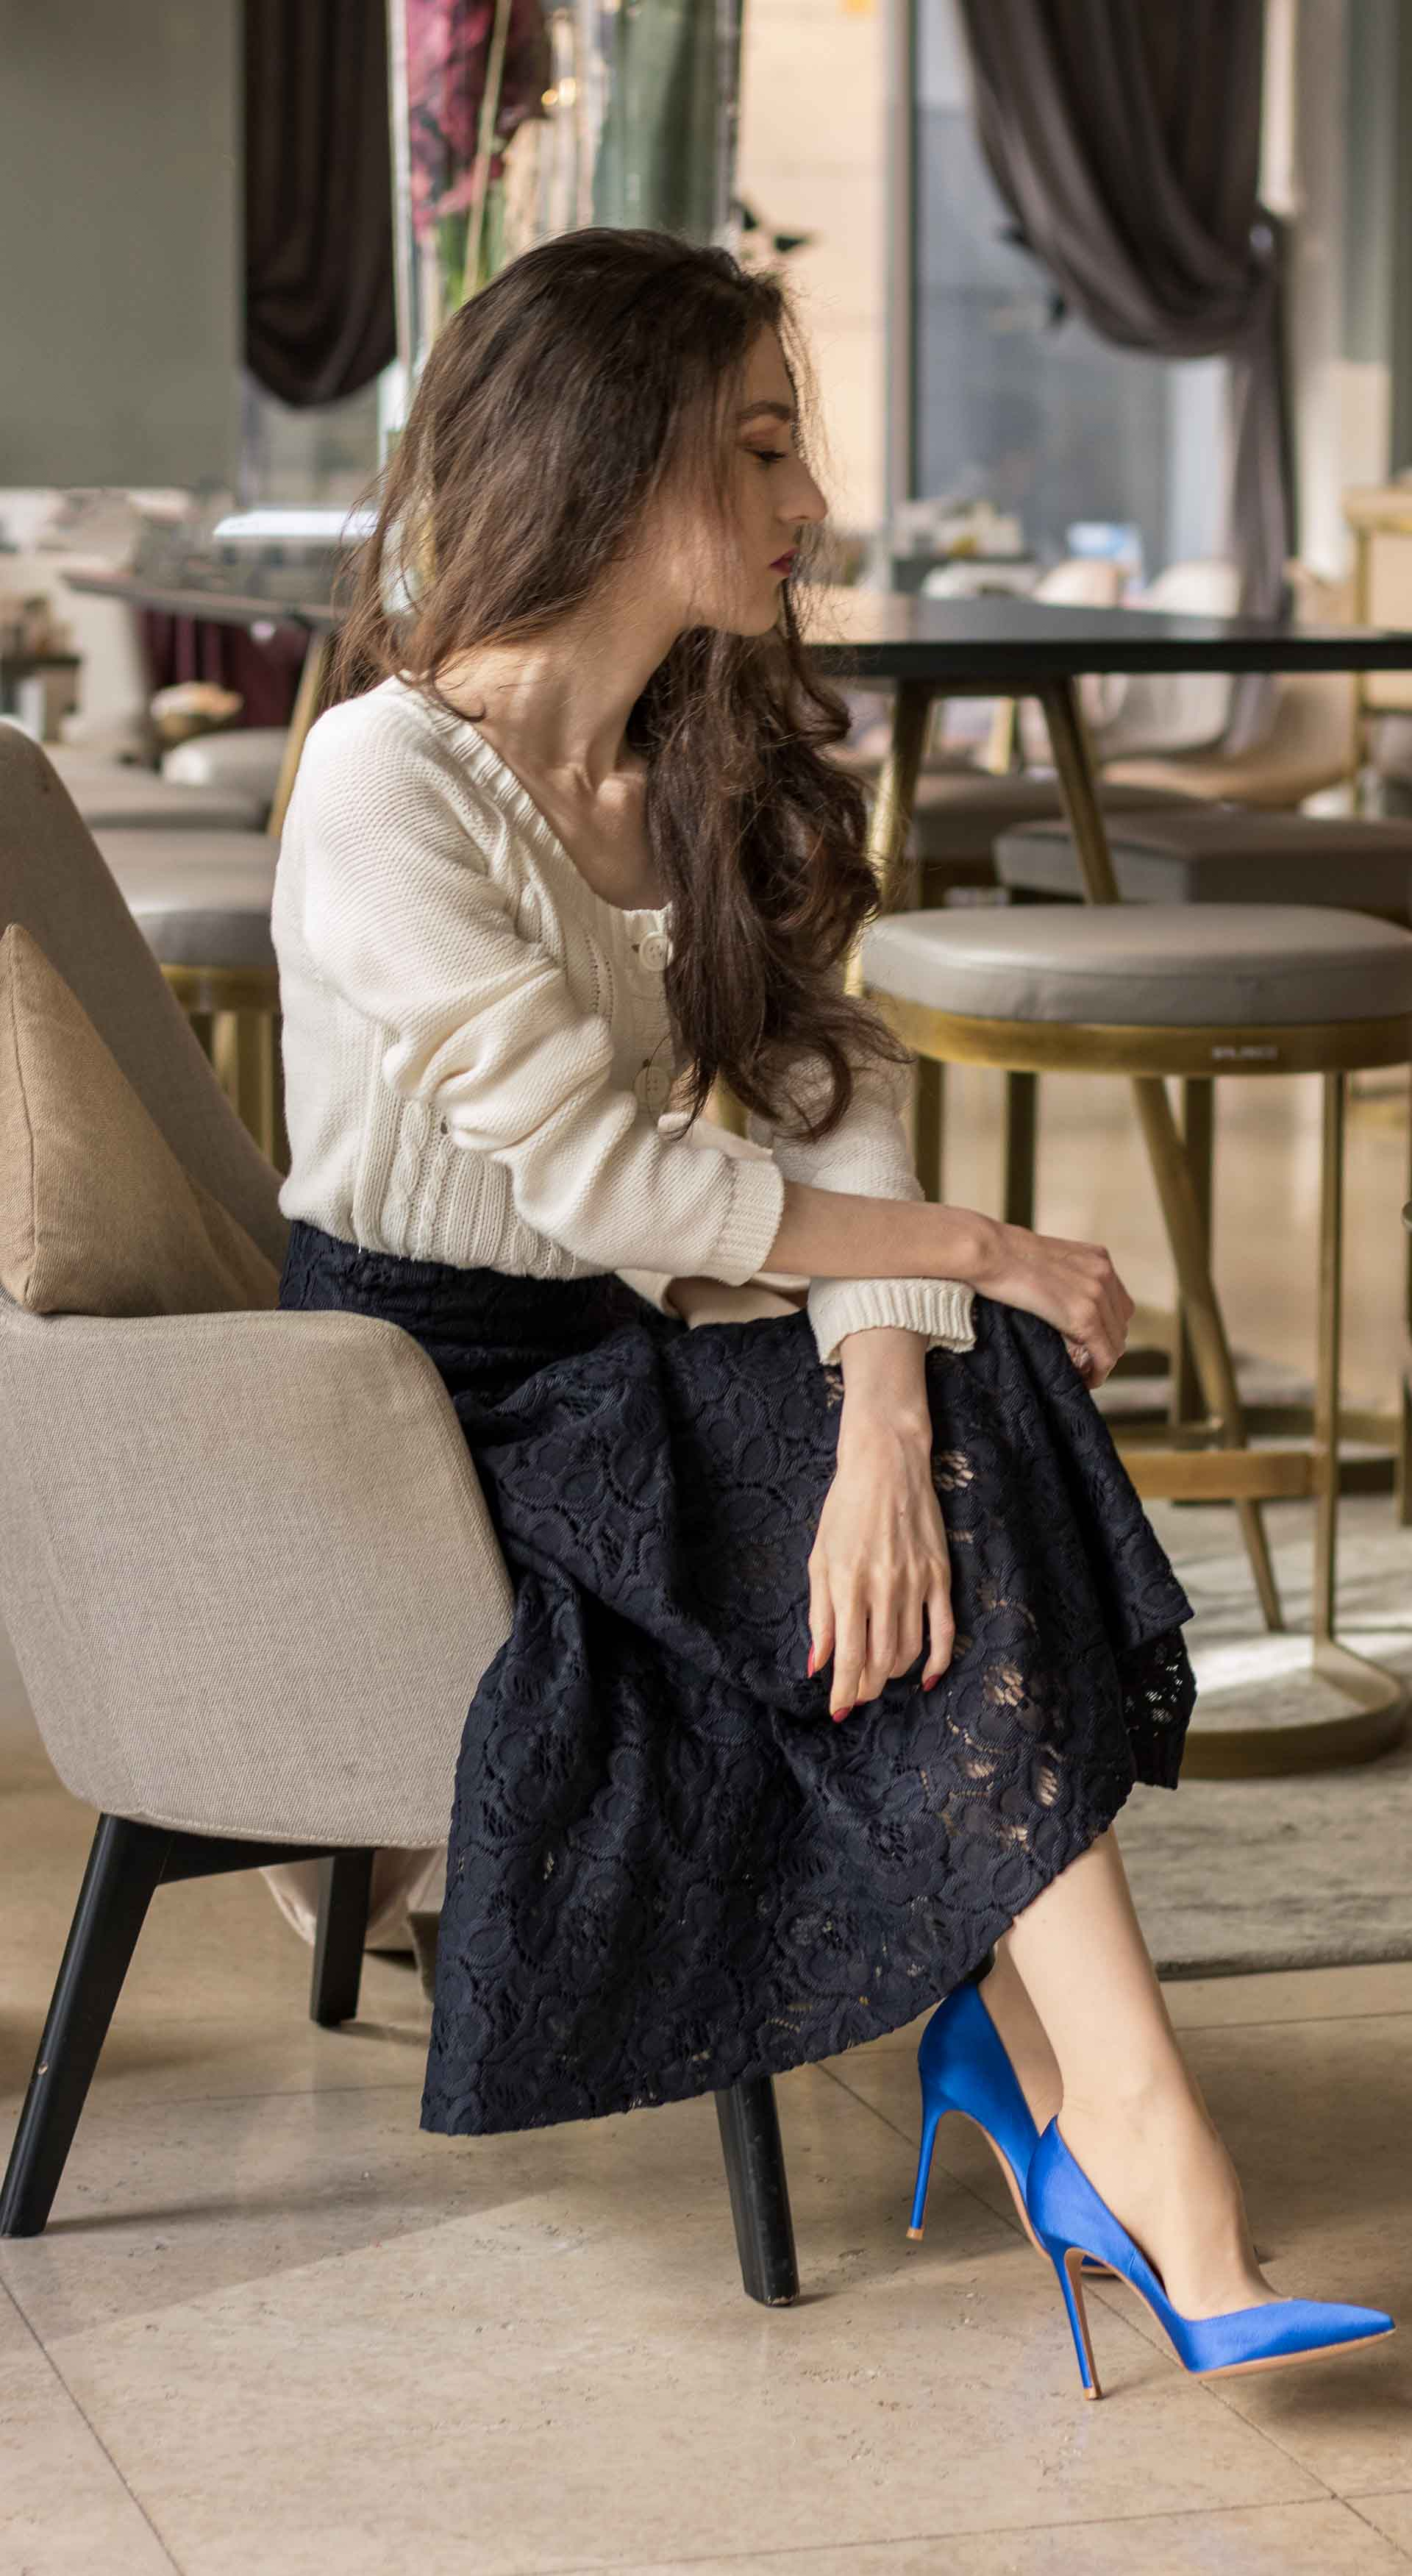 Beautiful Slovenian Fashion Blogger Veronika Lipar of Brunette from Wall dressed in white Mango cardigan etude into black lace midi skirt, blue Gianvito Rossi pumps for fall Sunday brunch sitting on the armchair